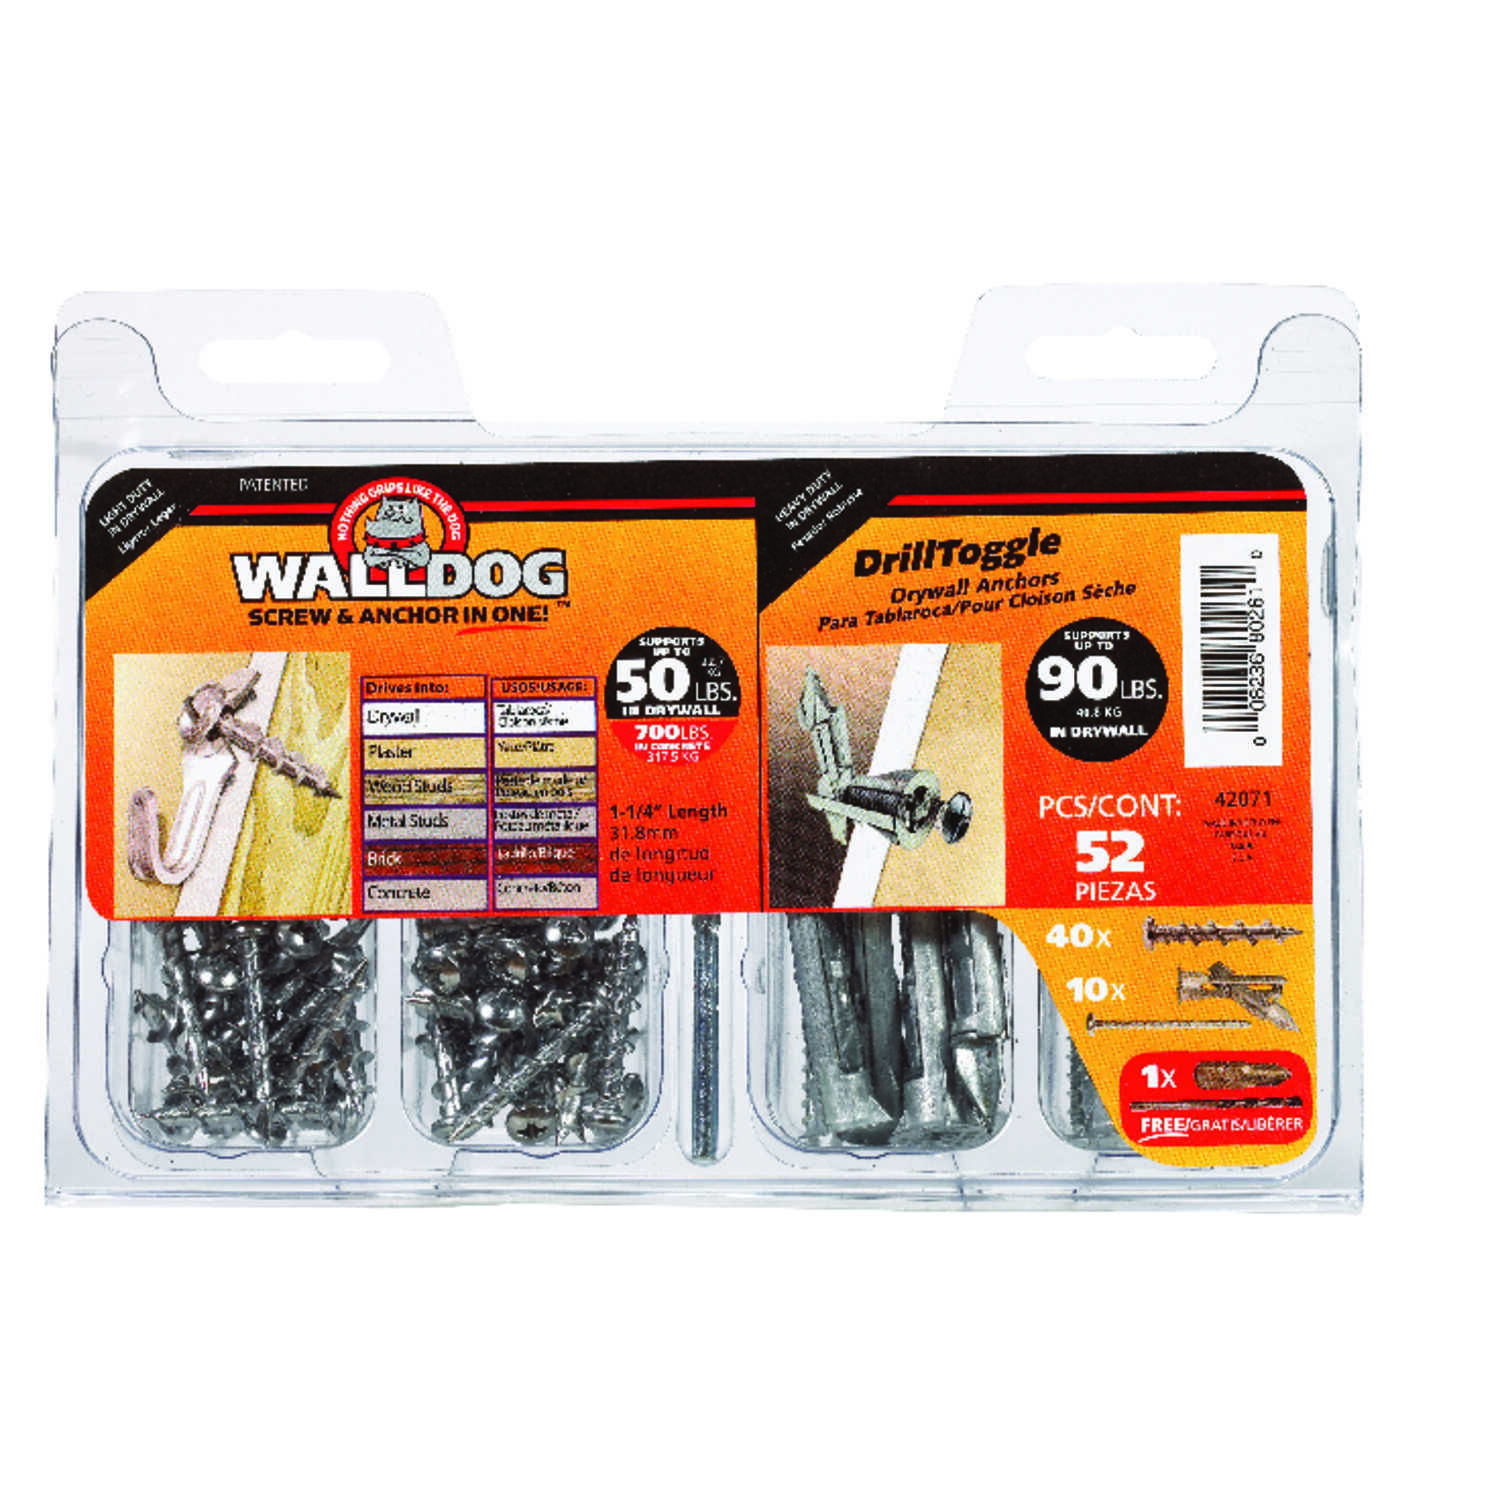 HILLMAN  Walldog  No. 10   x 1-1/4 in. L Phillips  Pan Head Chrome  Construction Screws  52 pk